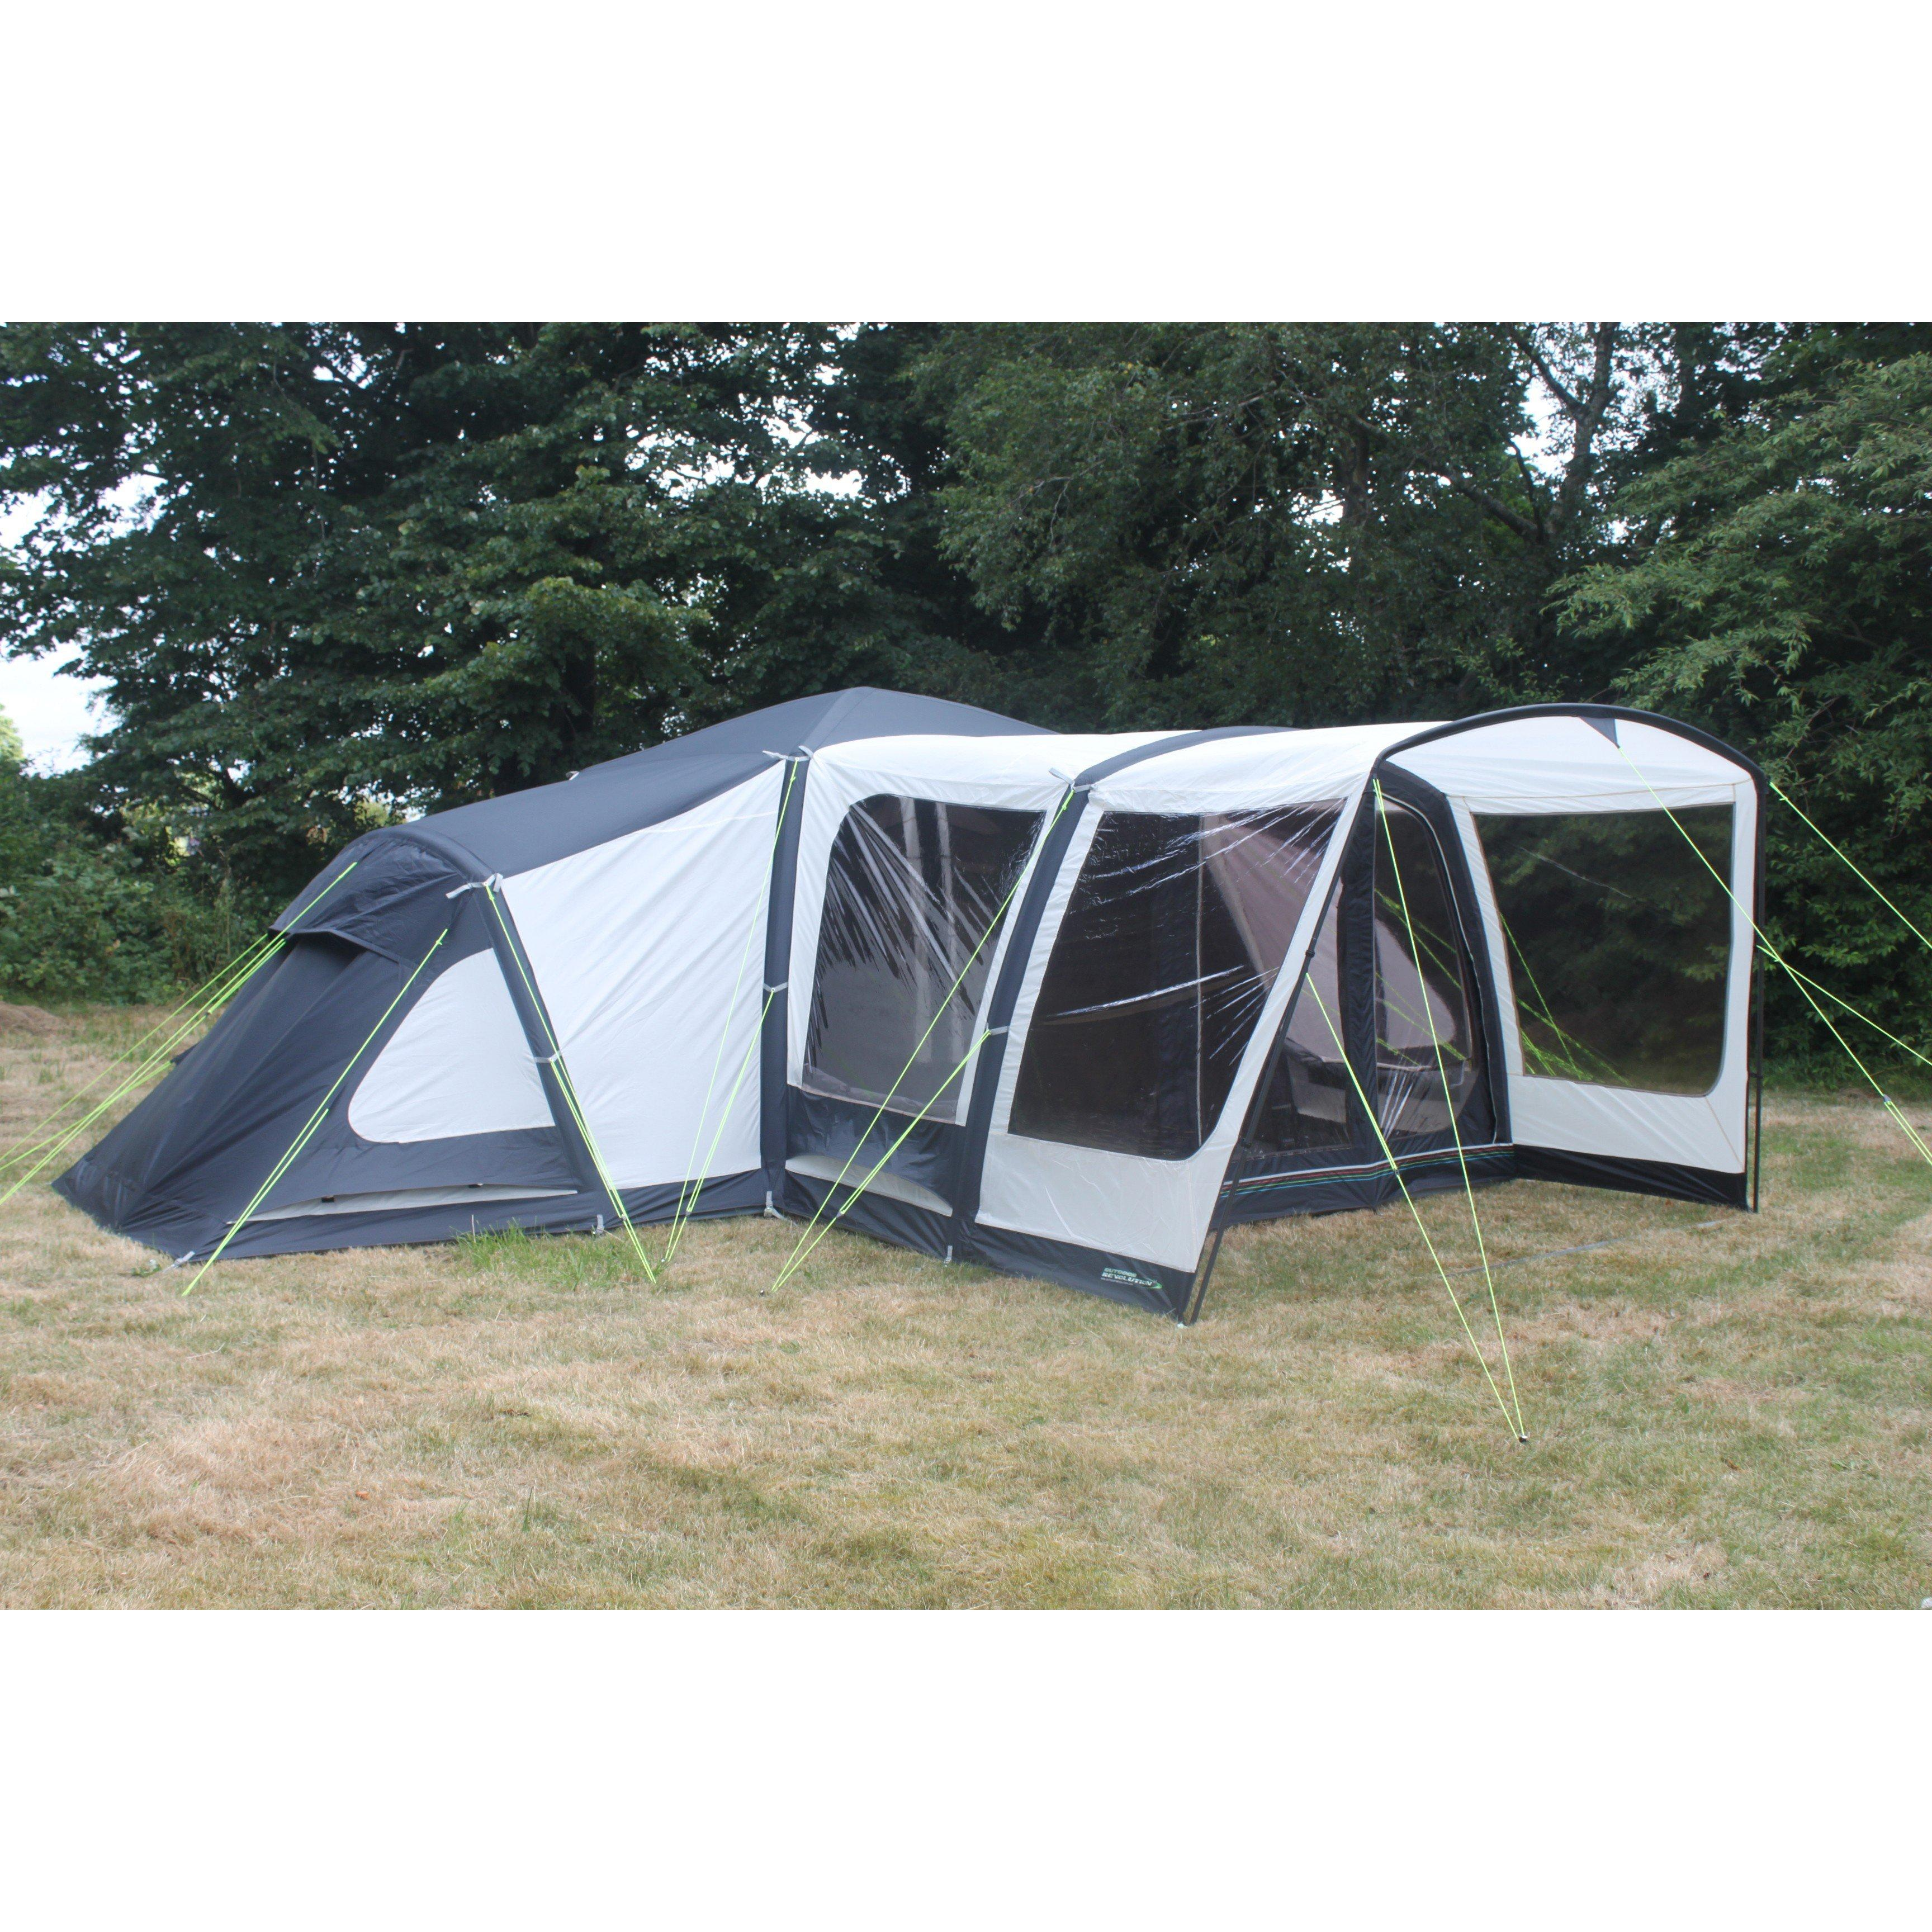 White Outdoor Revolution Airedale 12.0 Tent ...  sc 1 st  Millets & Inflatable Tent u0026 Air Tents | Blow Up Tent | Millets